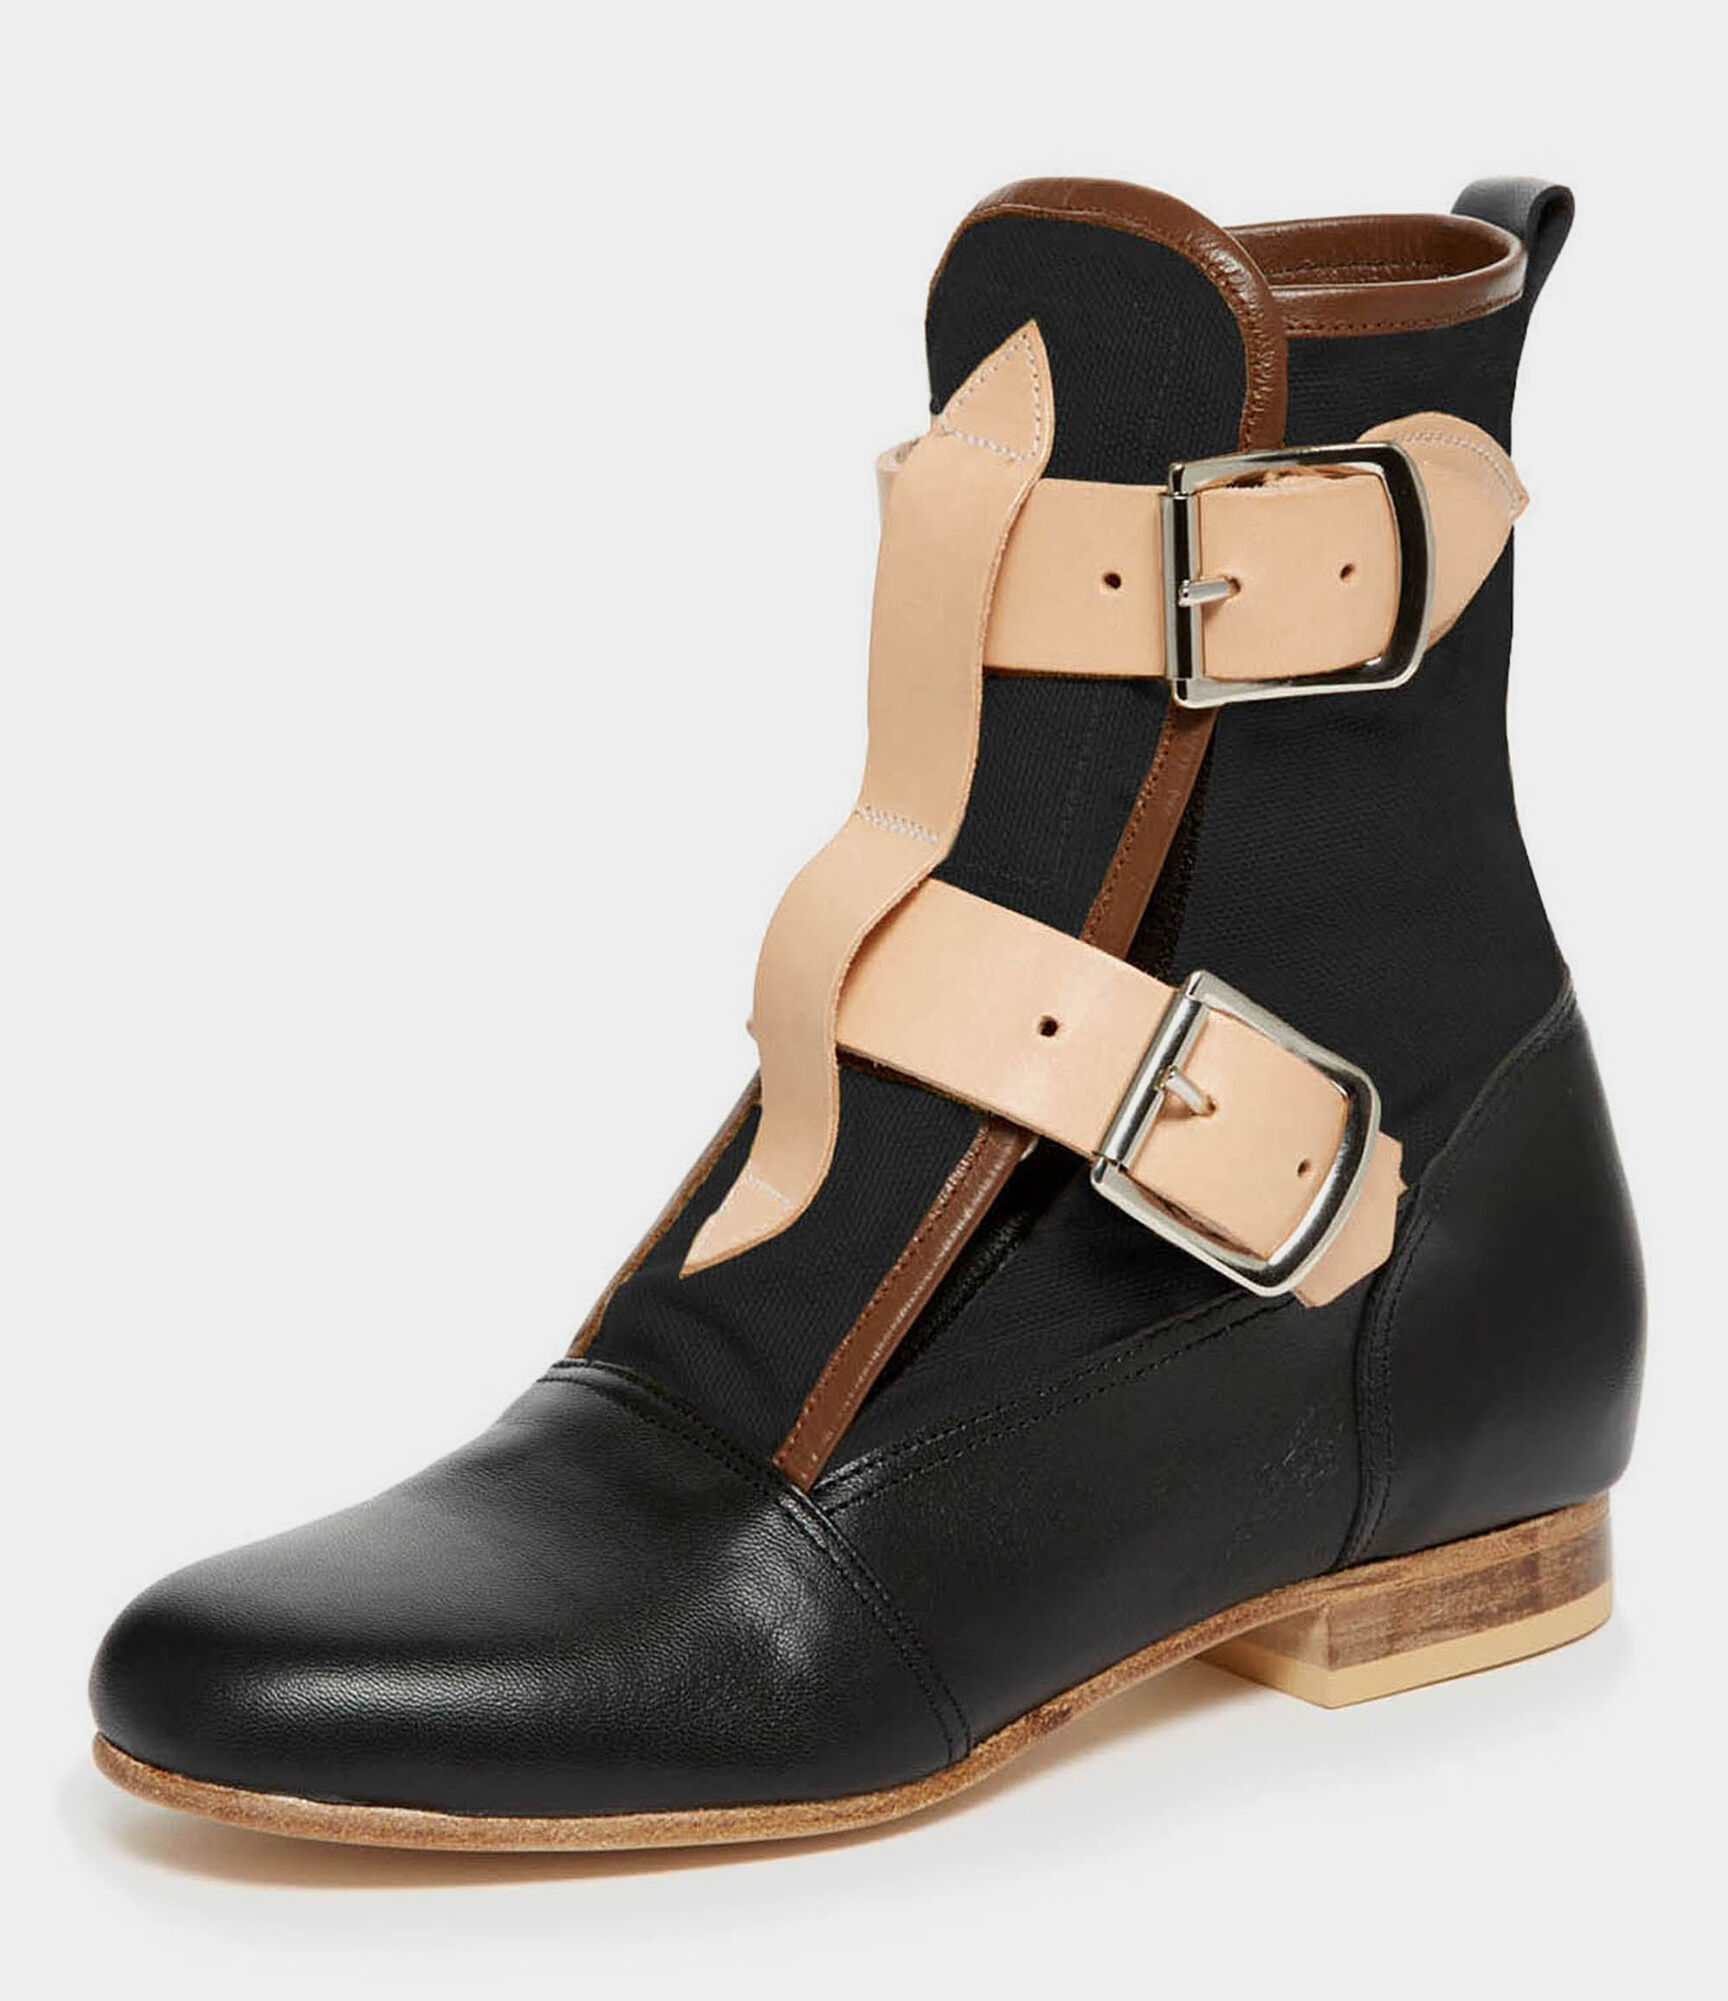 VIVIENNE WESTWOOD Ankle boots cheap price top quality cost online 0kumvSbm